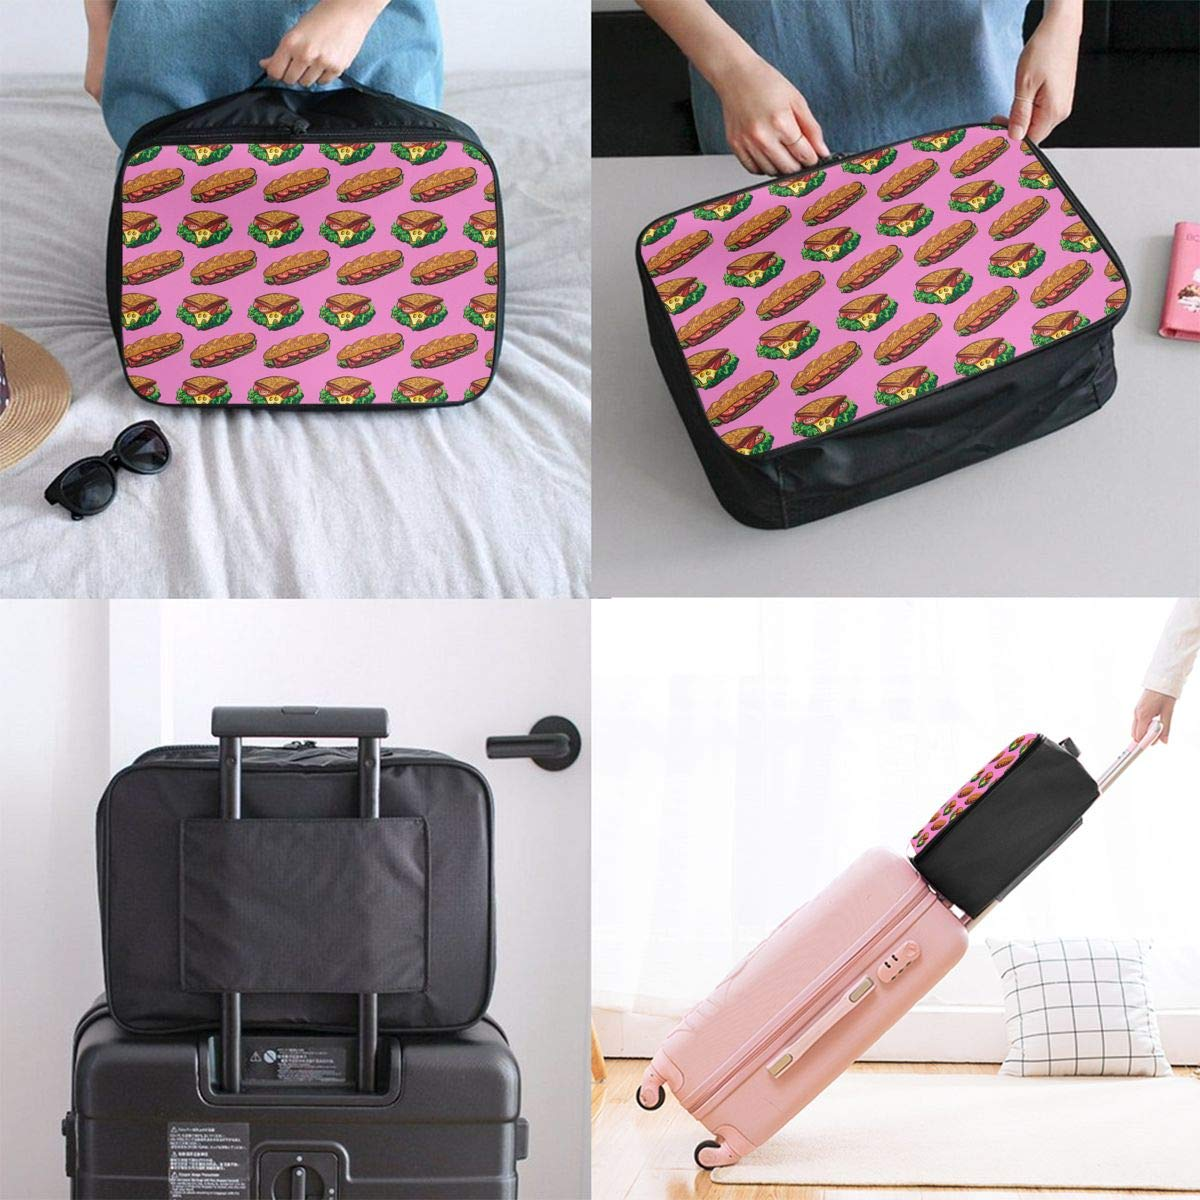 YueLJB Delicious Sandwich Pattern Lightweight Large Capacity Portable Luggage Bag Travel Duffel Bag Storage Carry Luggage Duffle Tote Bag